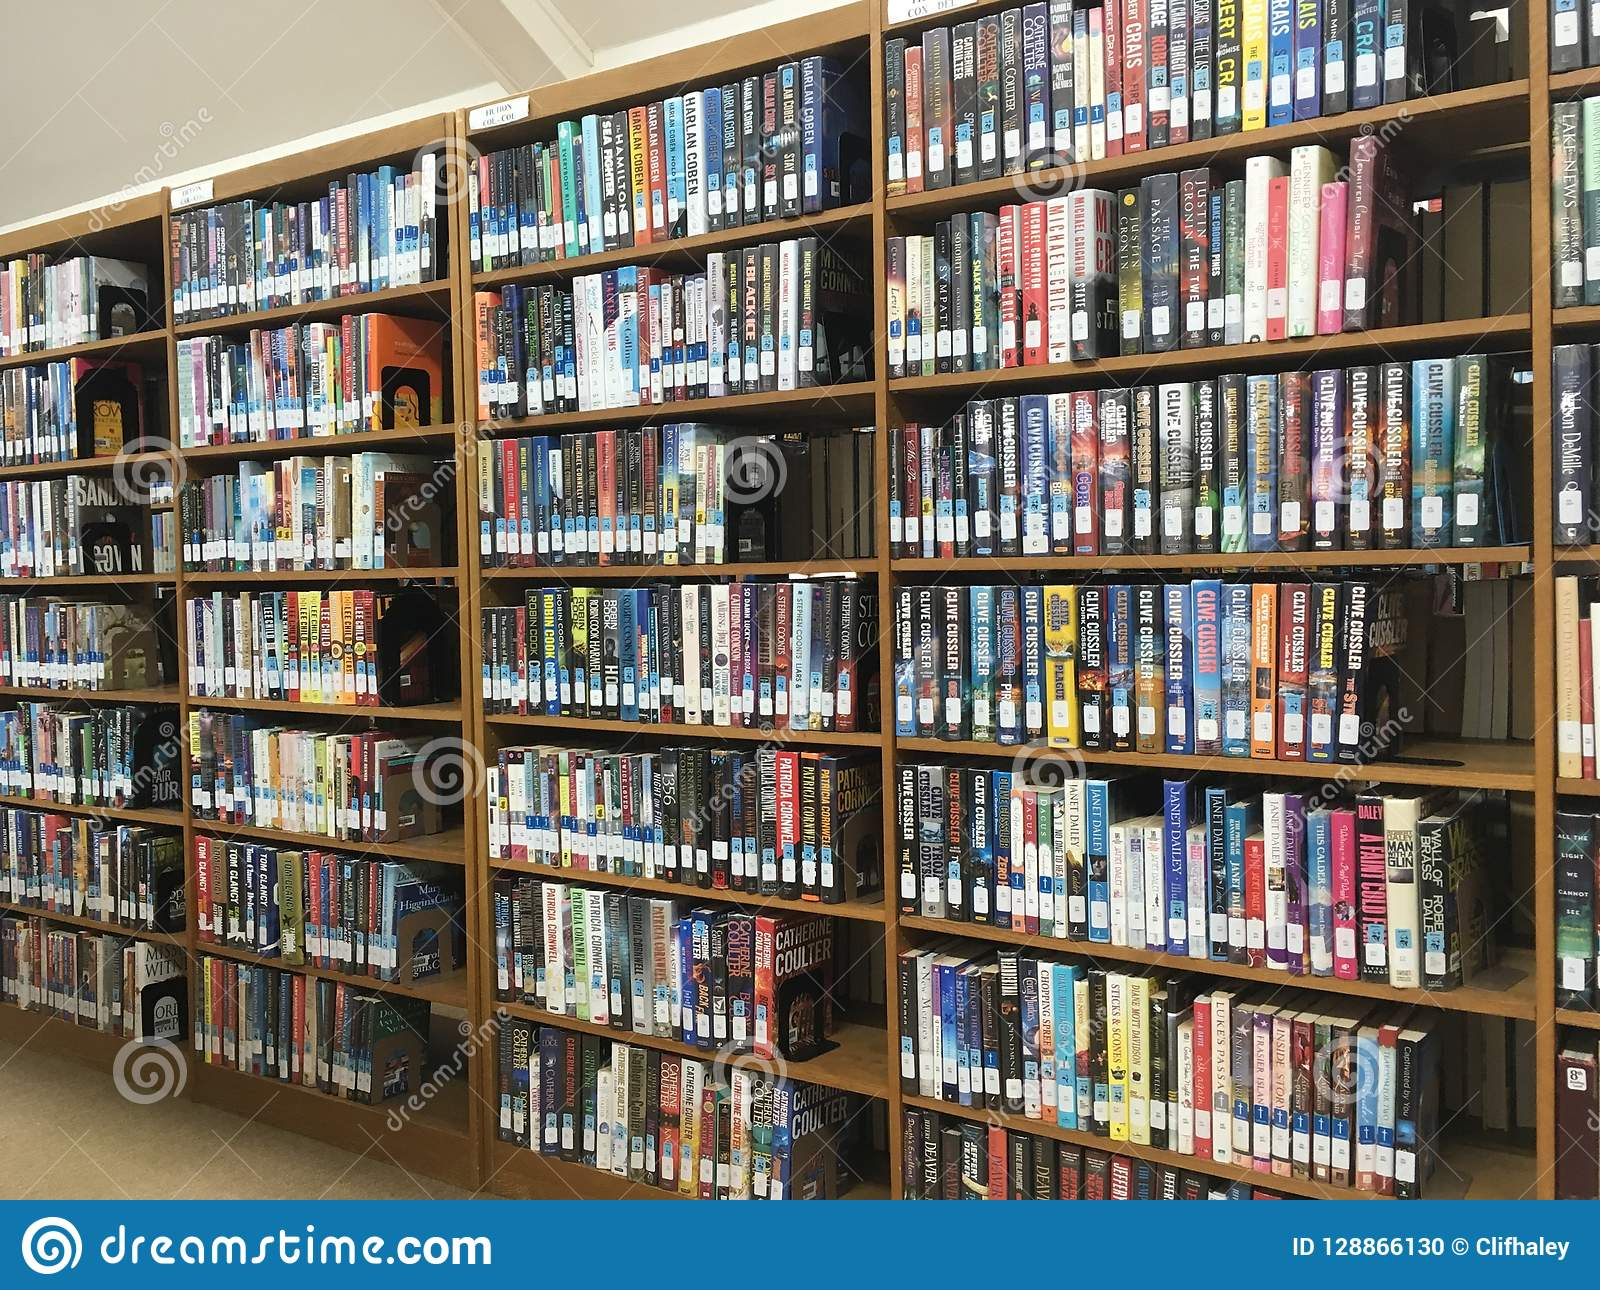 Library Books On Shelves Stock Photo Image Of Reading - 128866130